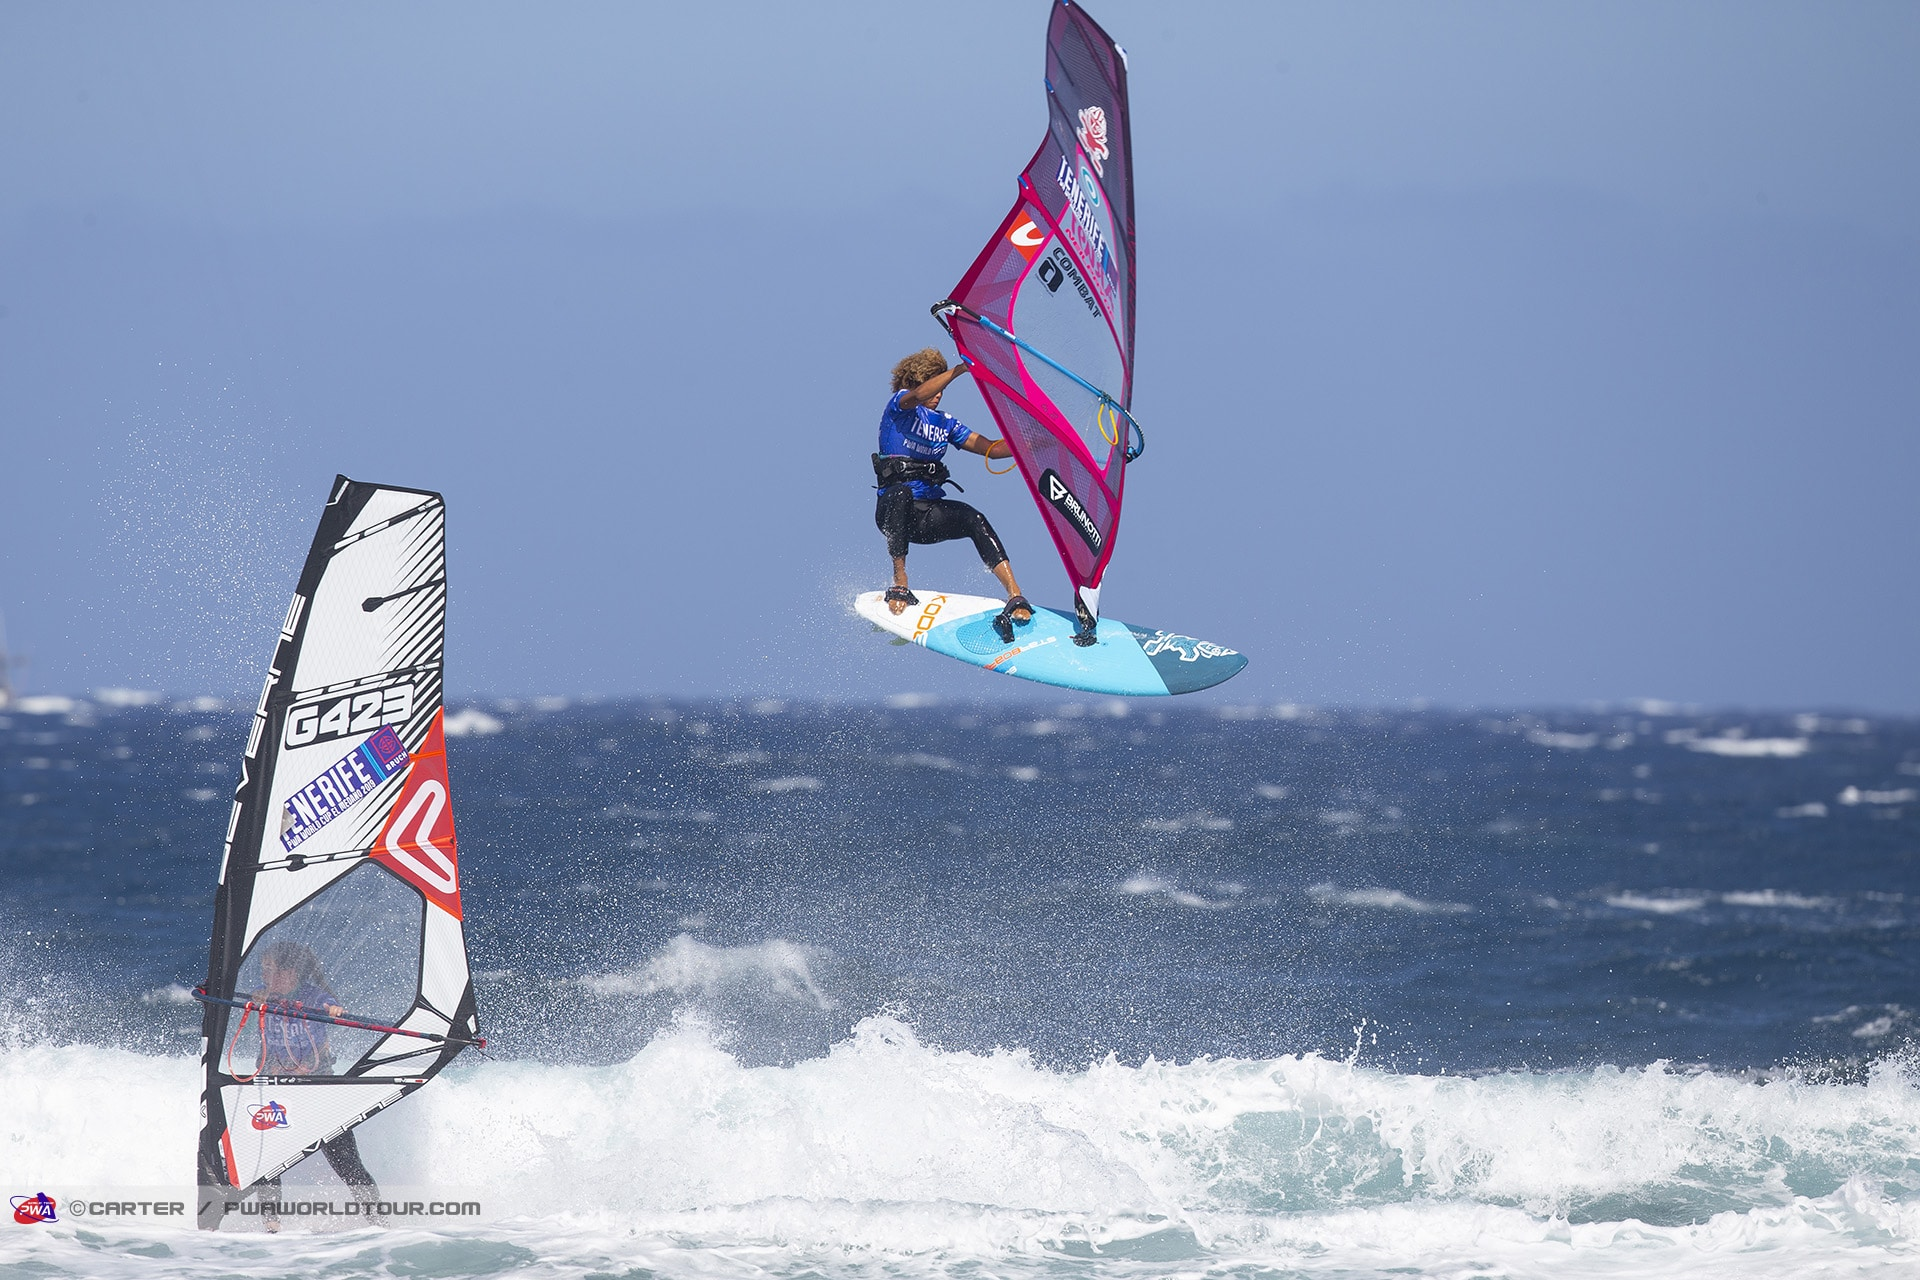 Sarah-Quita Ofringa nails a Forward in EL Cabezo (Photo: Carter/PWA)